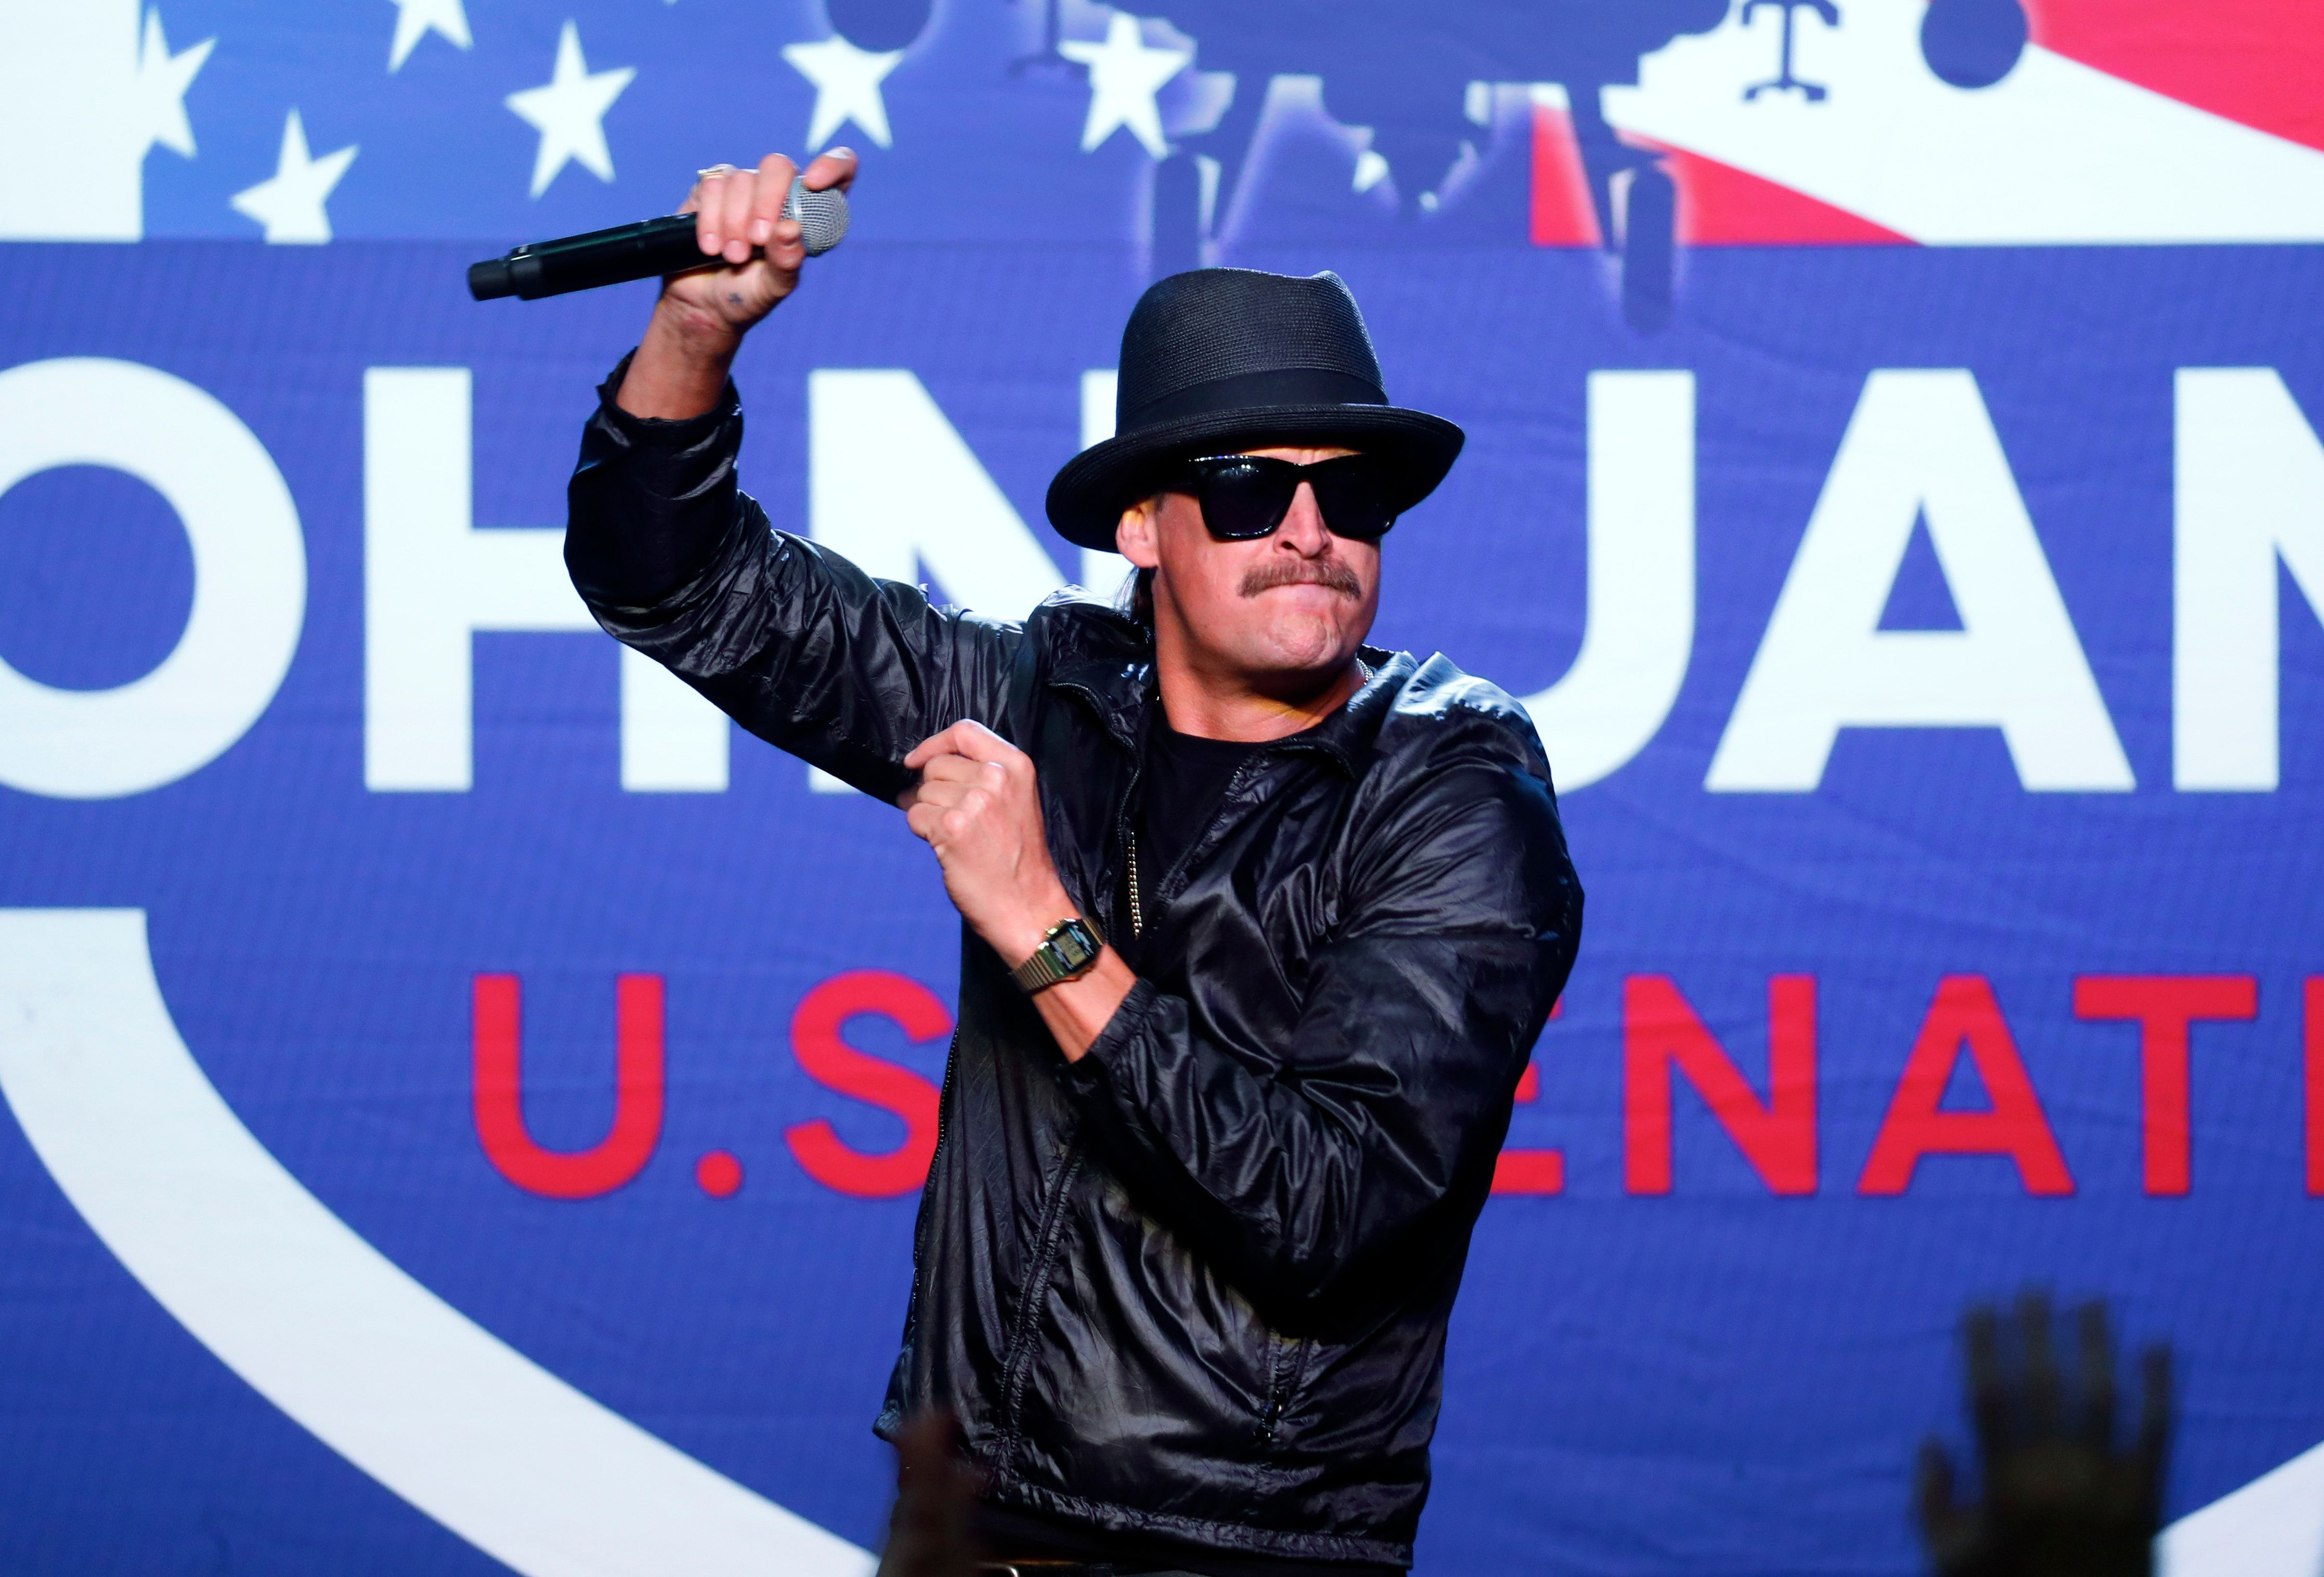 Kid Rock performs during a rally for Republican U.S. Senate candidate John James in Pontiac, Mich., Wednesday, Oct. 17, 2018. (AP Photo/Paul Sancya)